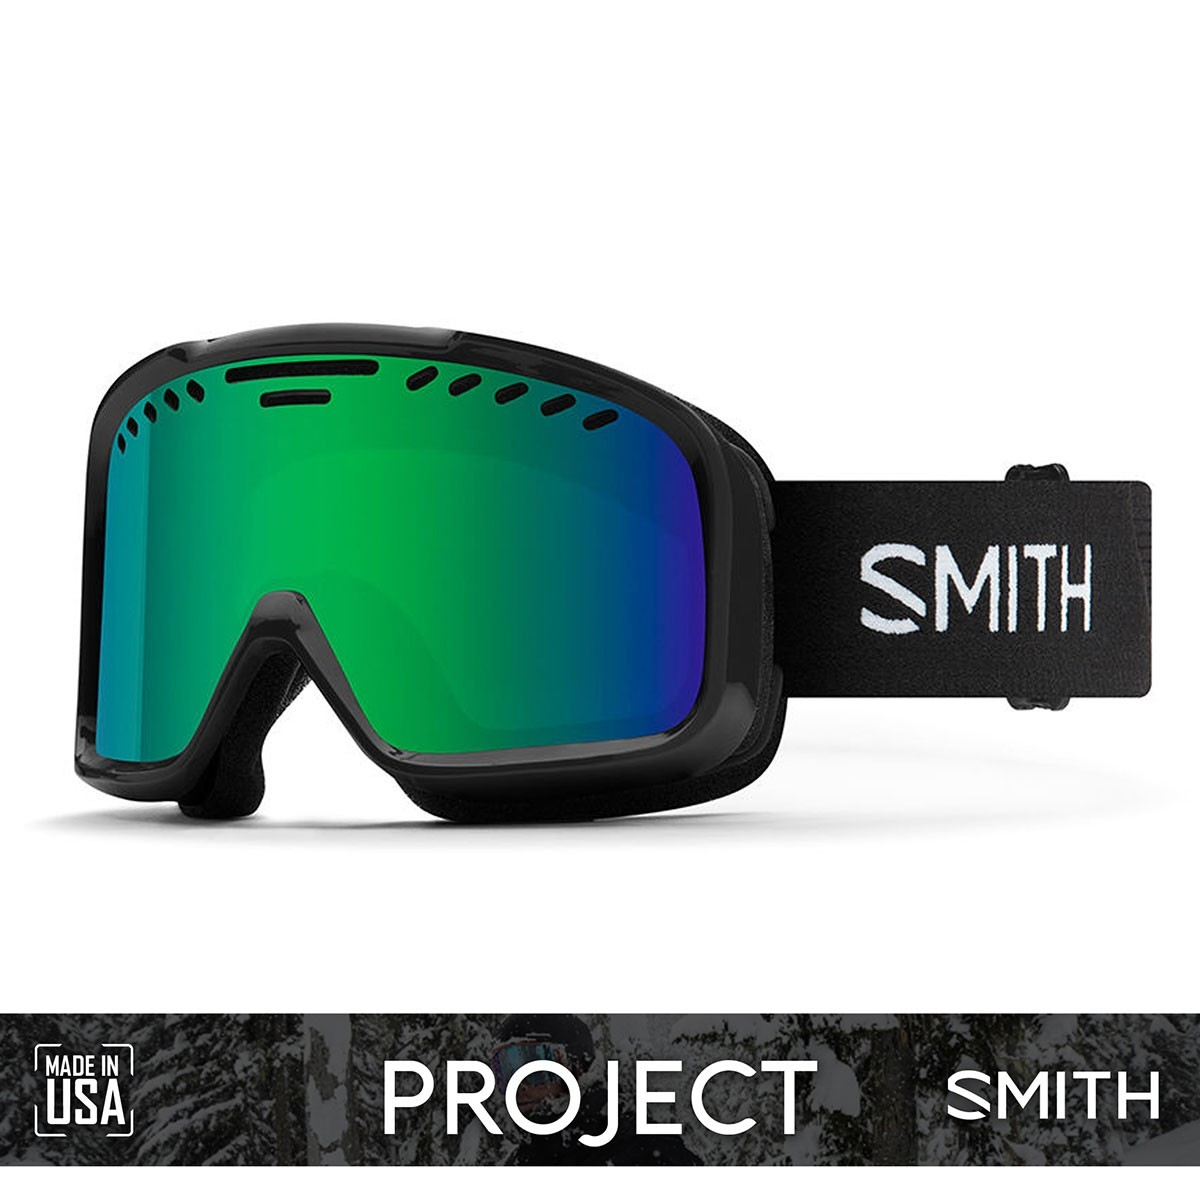 SMITH PROJECT Black | S3 GREEN SOL-X Mirror - Изображение - AQUAMATRIX